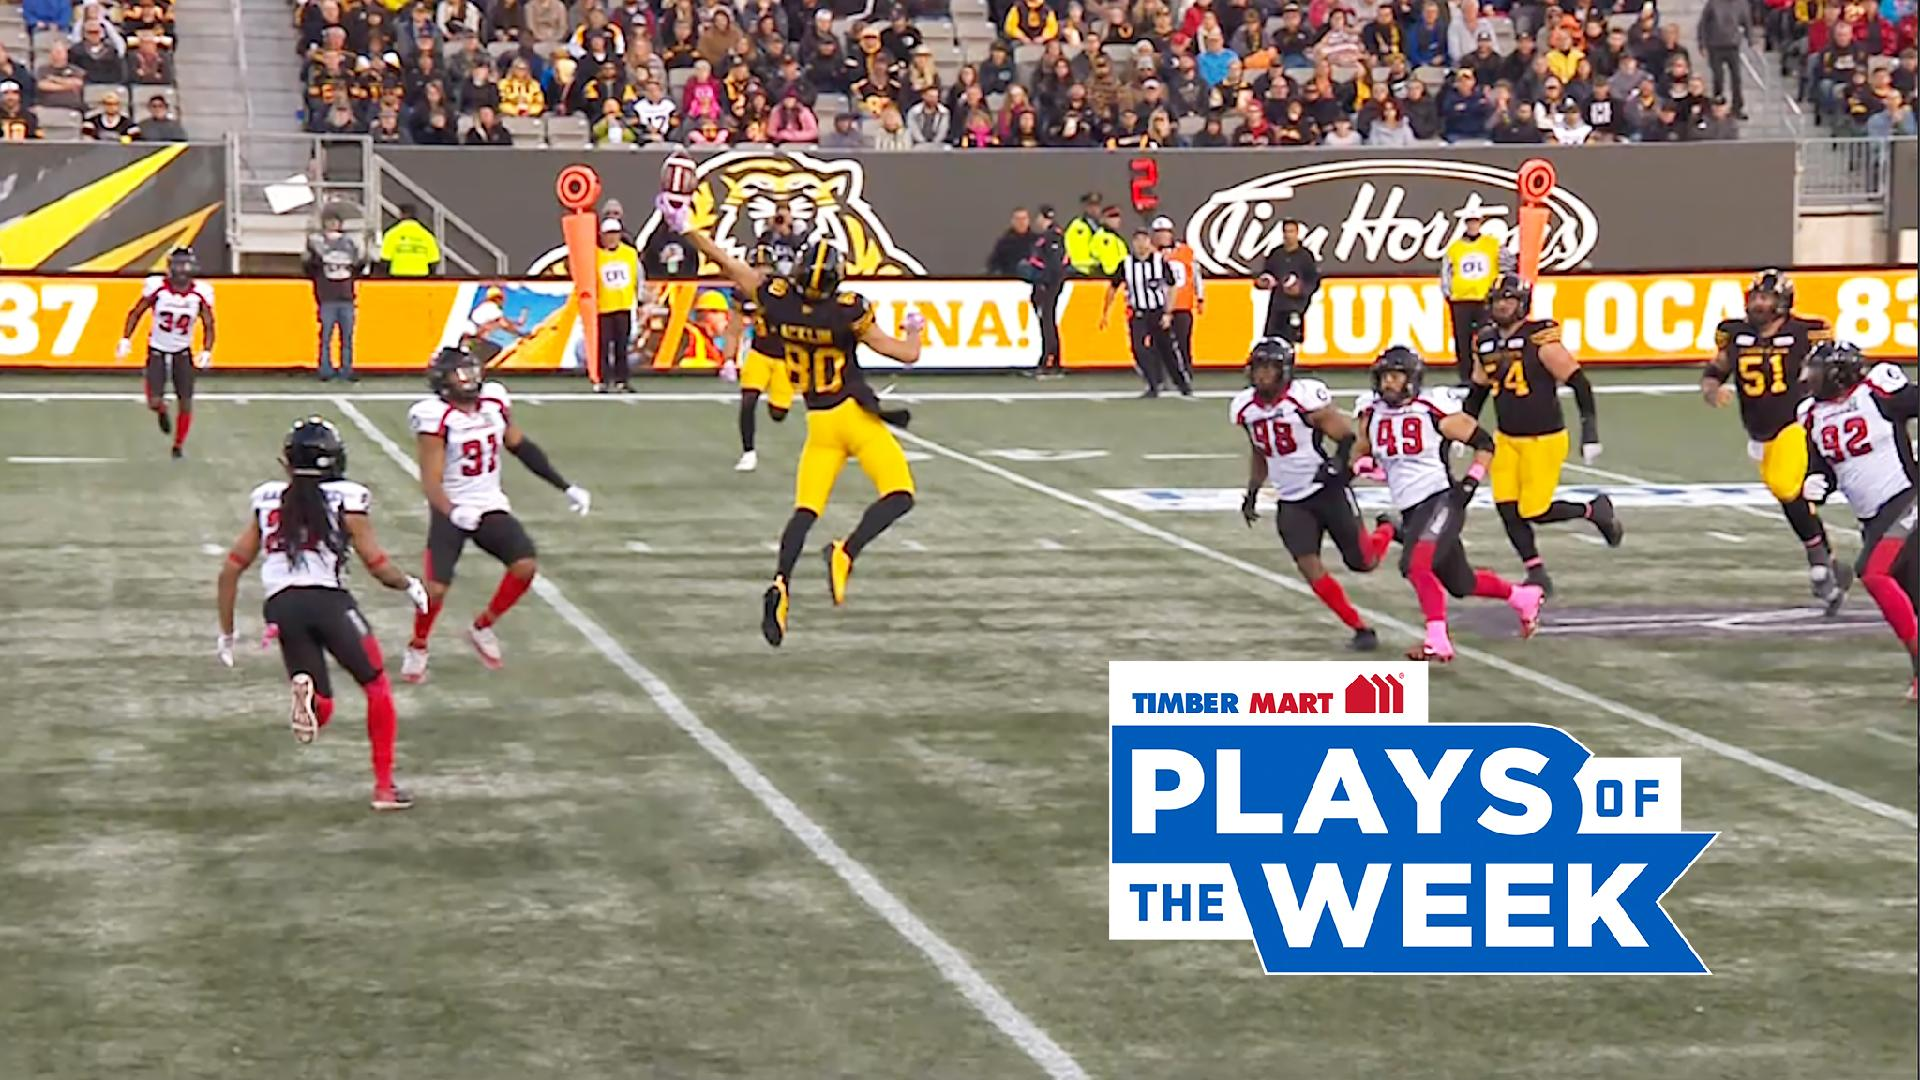 Acklin Goes Upstairs for Epic Grab in the Timber Mart Plays of the Week - CFL.ca